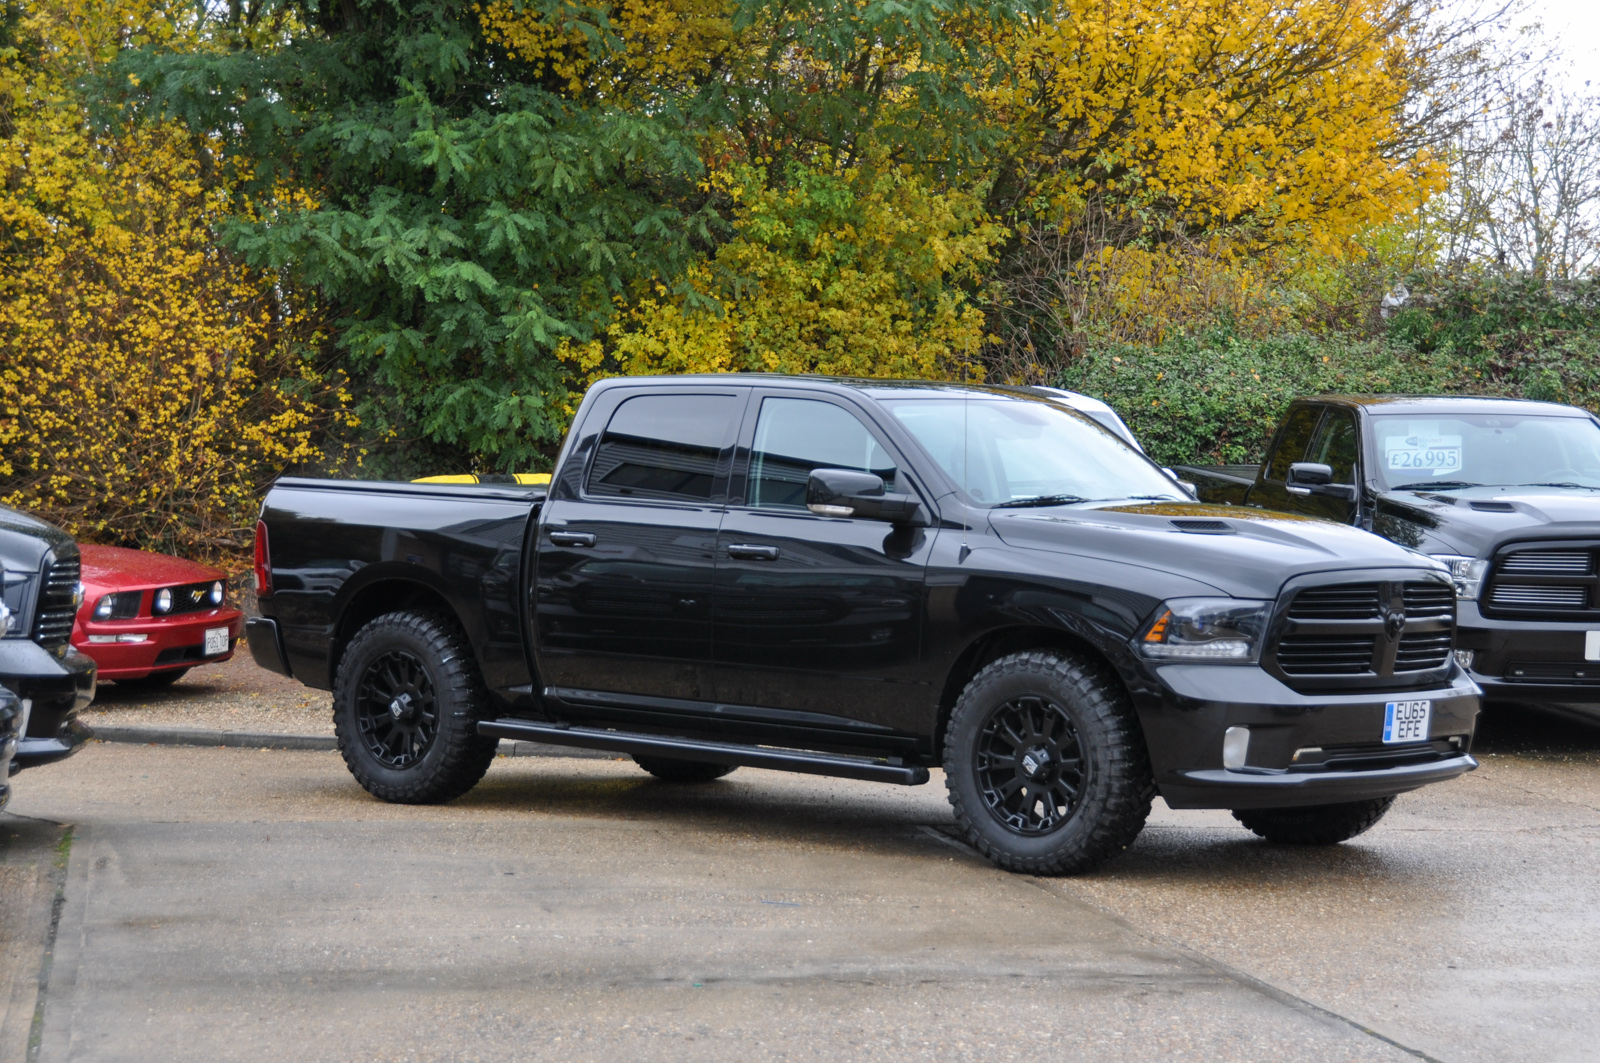 2015 dodge ram crew sport for sale uk no vat. Black Bedroom Furniture Sets. Home Design Ideas